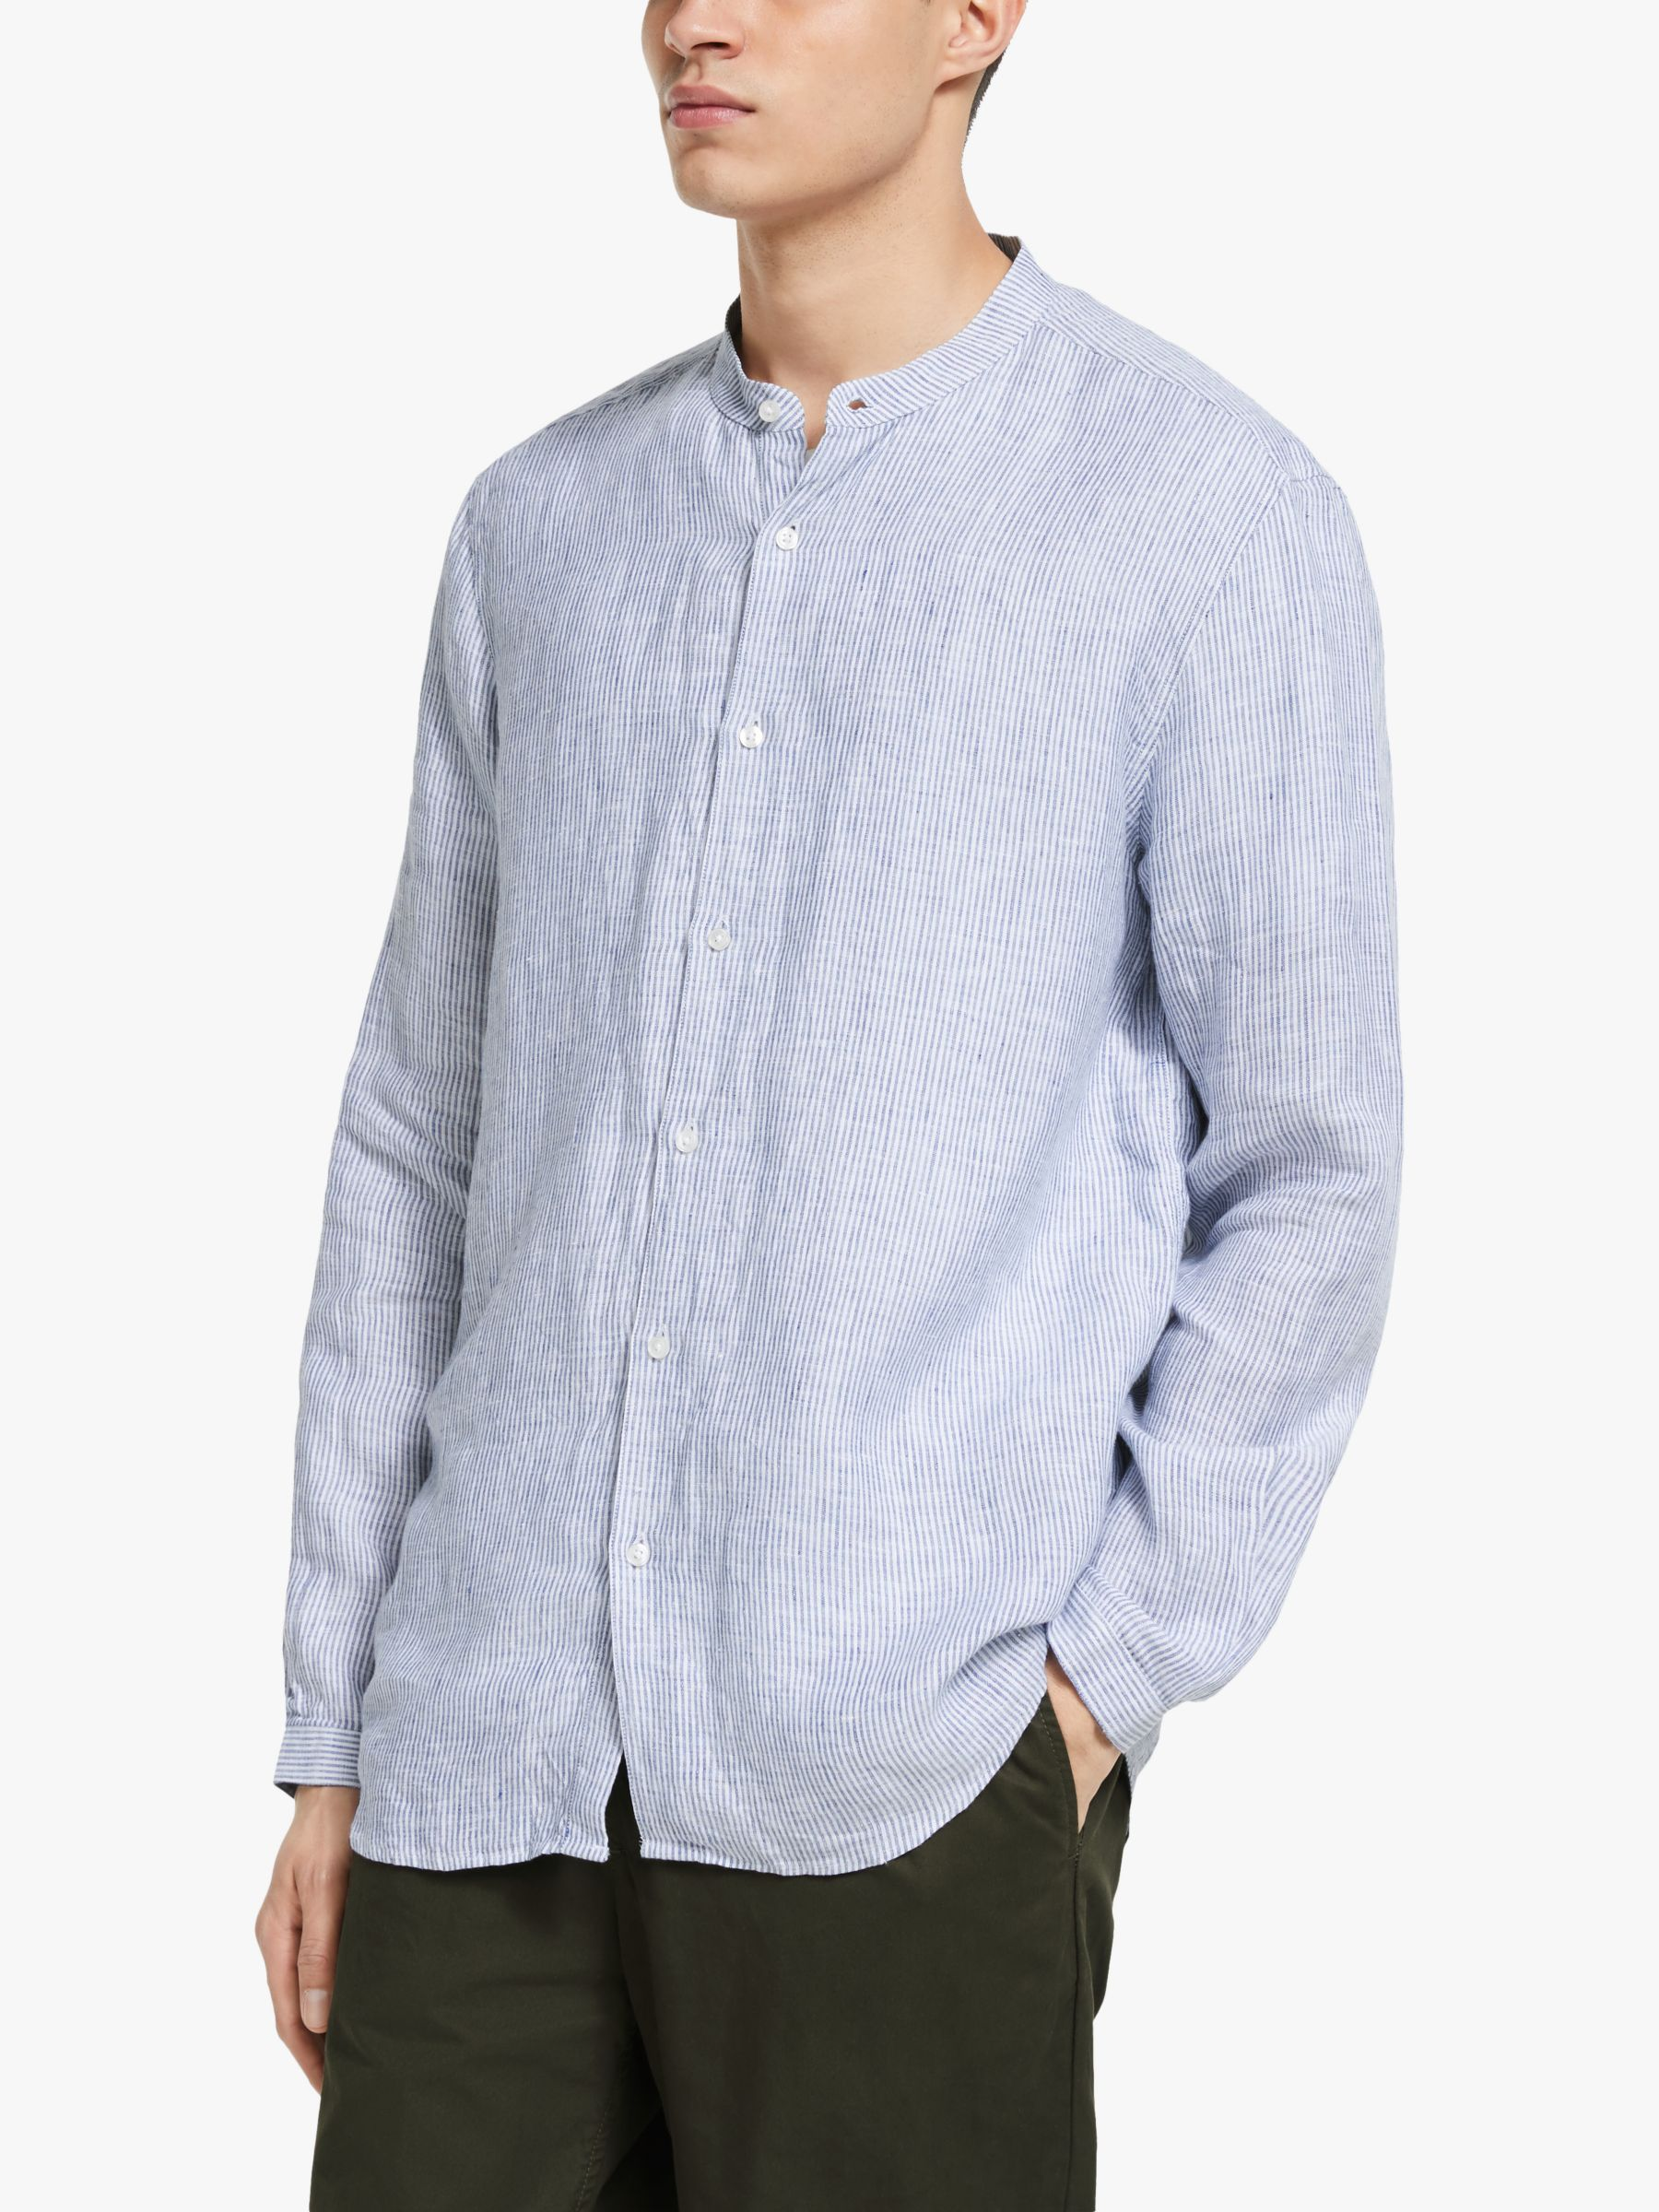 Armor lux Armor Lux Chemise Collarless Linen Shirt, Rayures Tght/Nature